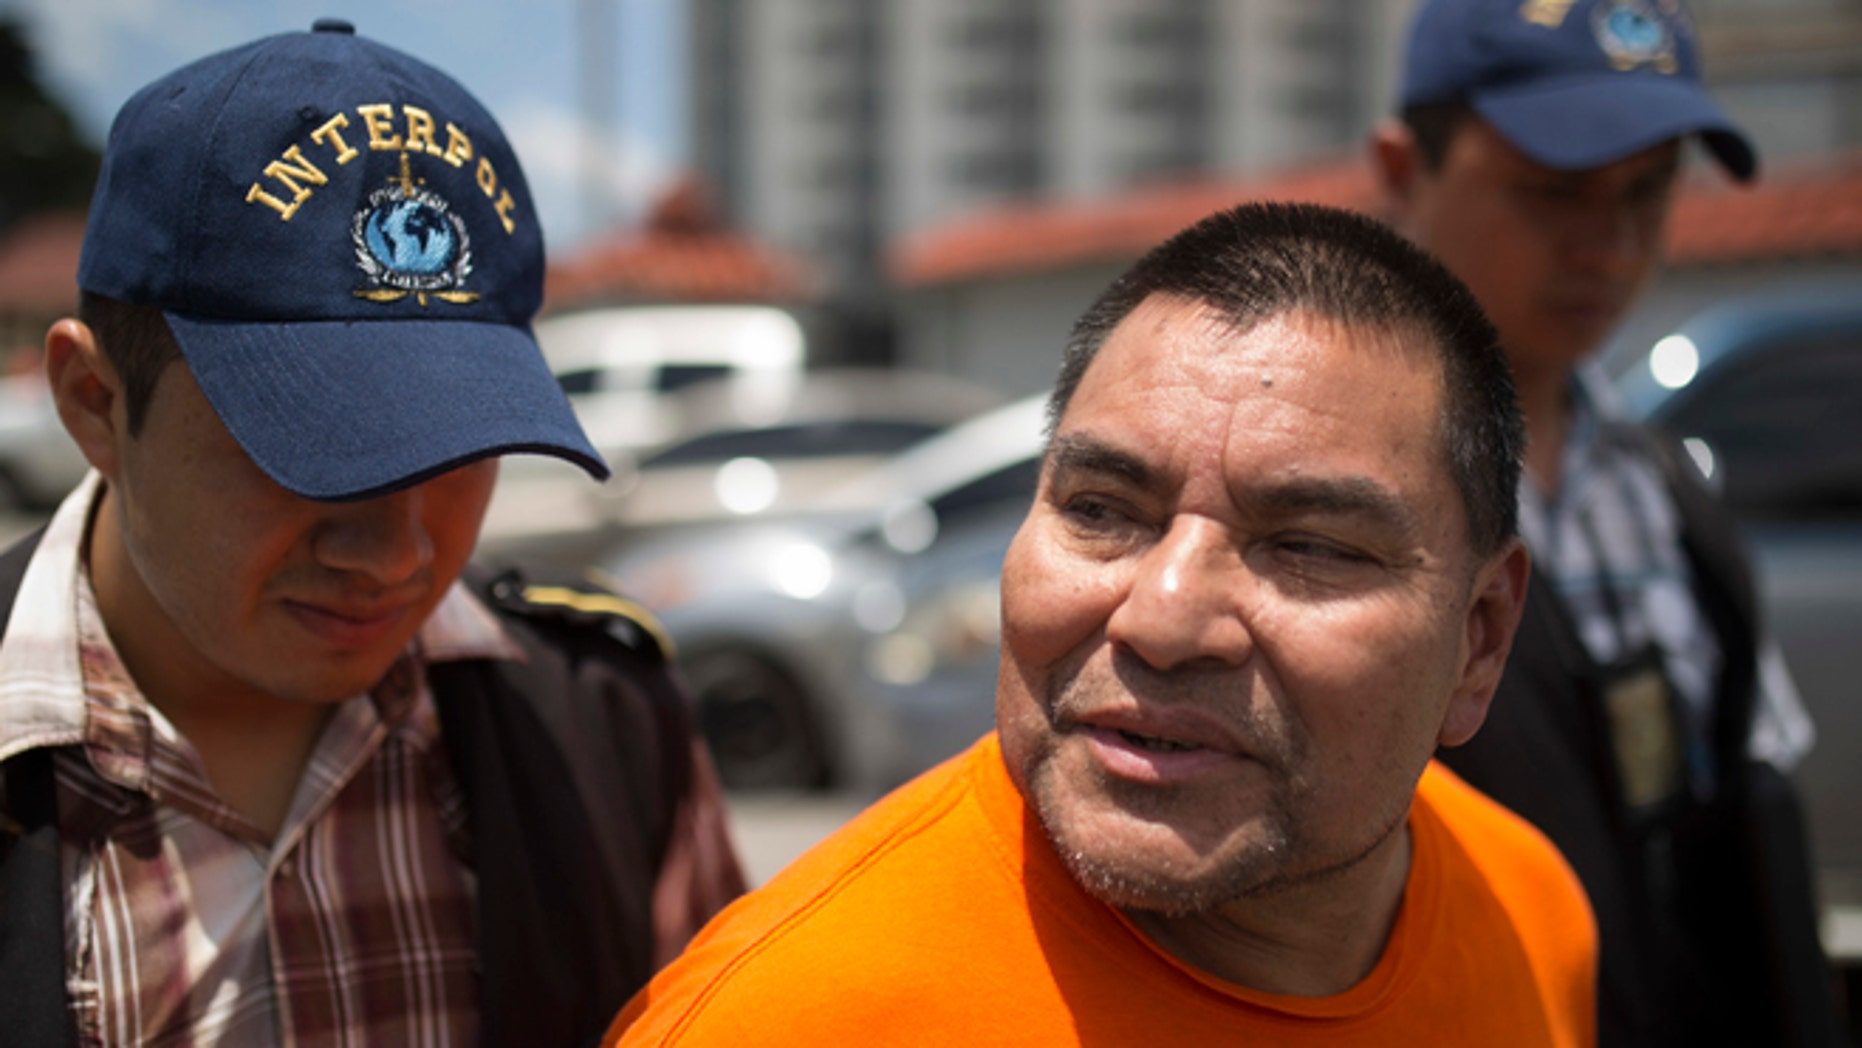 Santos Lopez Alonzo after landing at the Air Force base in Guatemala City, Wednesday, Aug. 10, 2016.